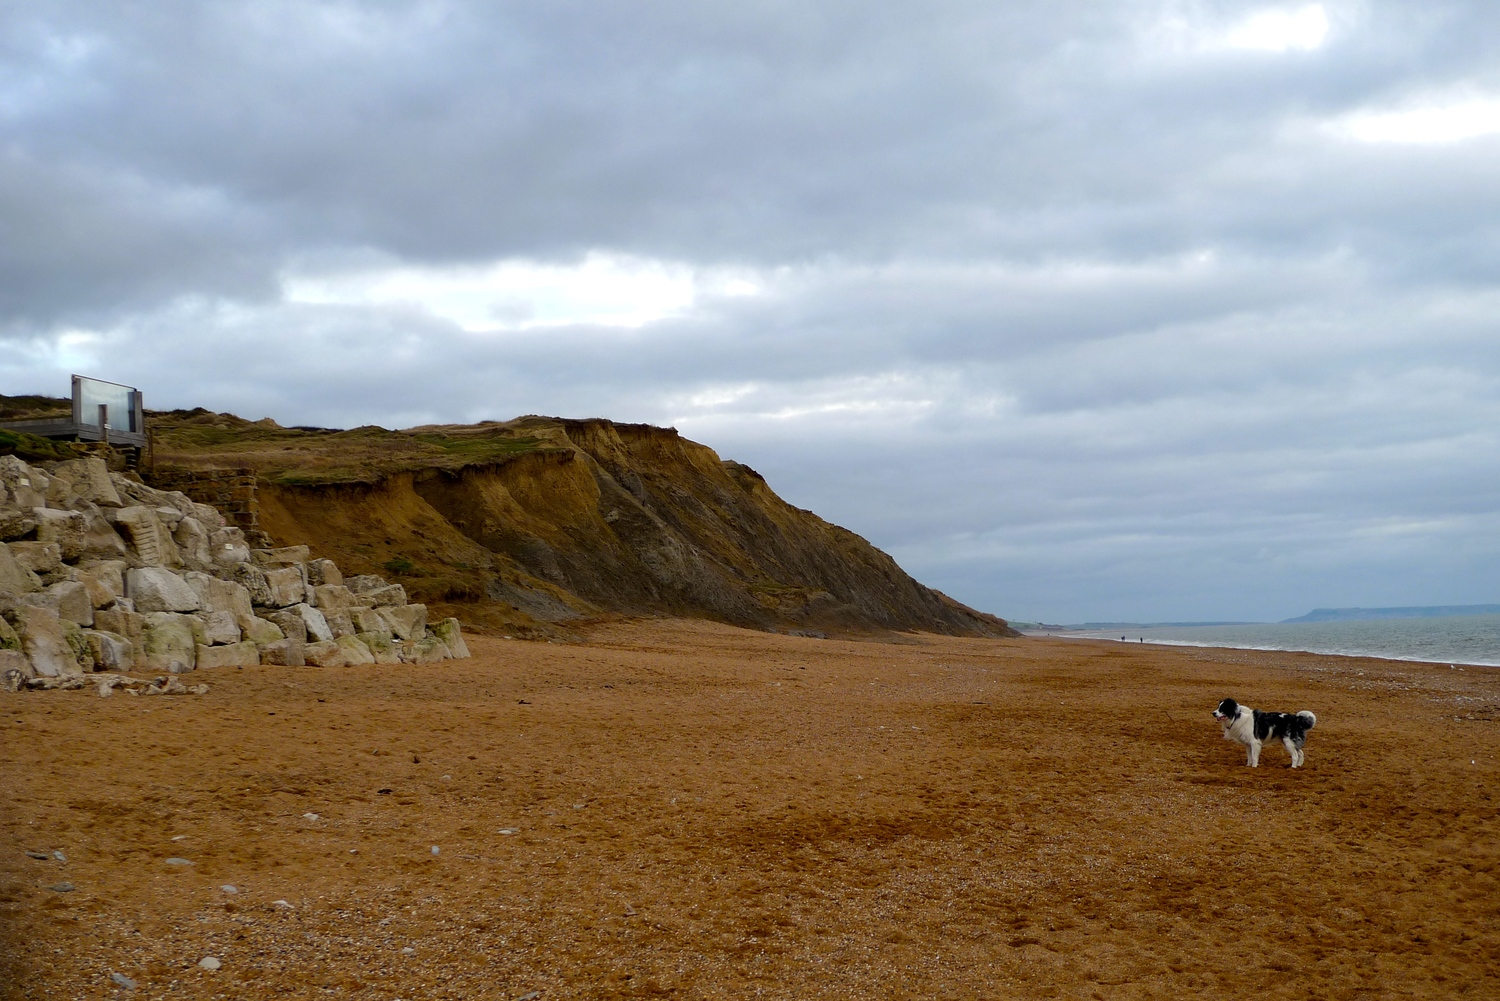 Broadchurch country: Burton Bradstock